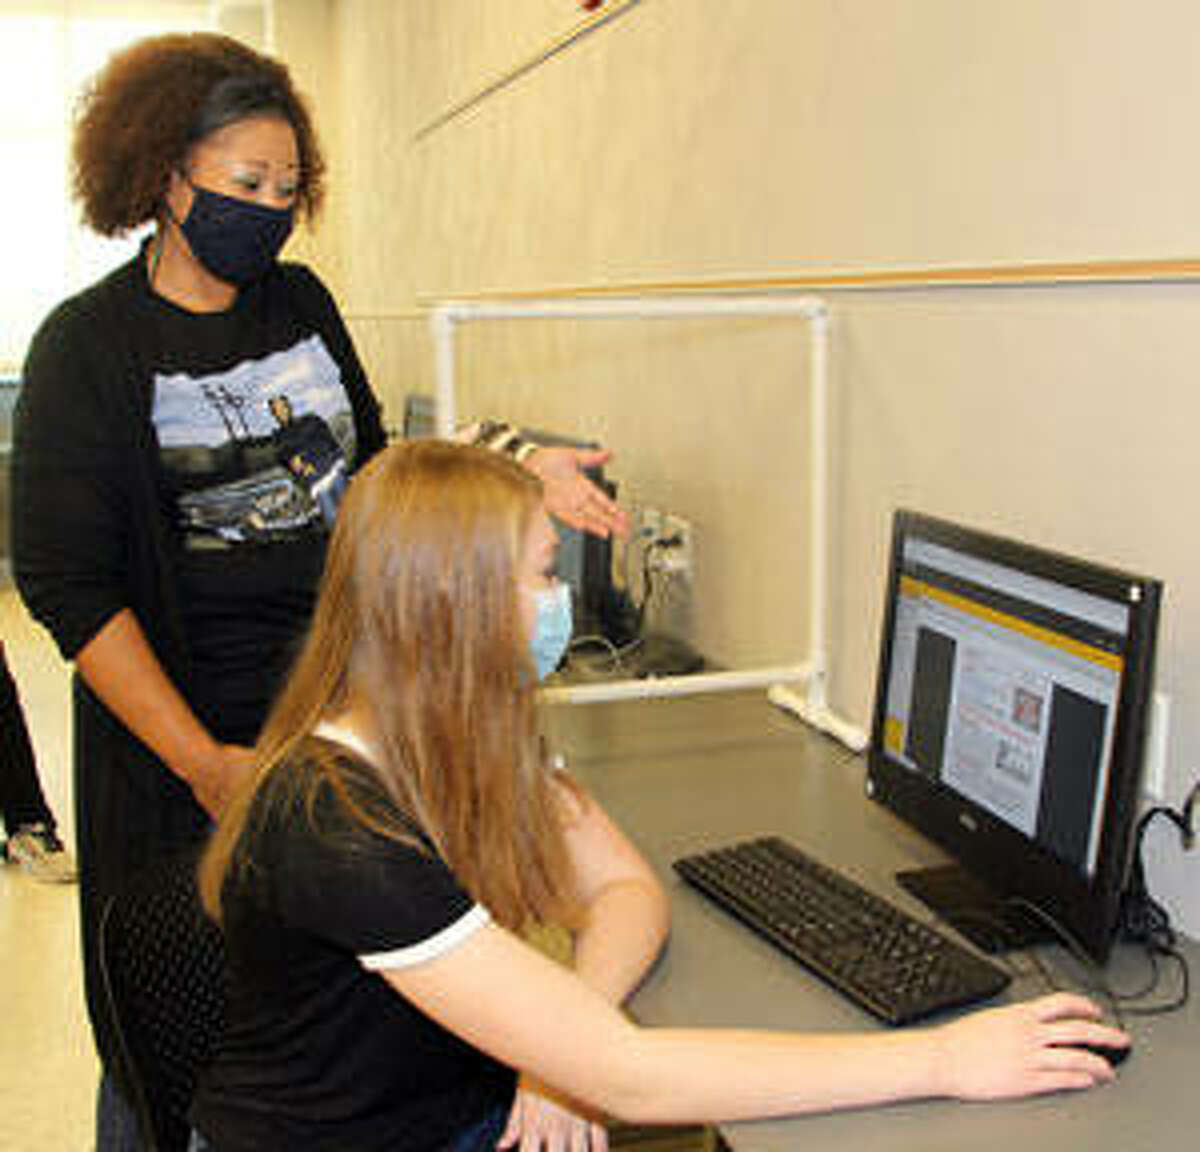 Southwestern Illinois College Associate Professor of English Chantay White-Williams, left, of St. Louis instructs Anastasia Ottinger of Shiloh during her English class. White-Williams was named Full-time Faculty Member of the Year for 2020 by the college Board of Trustees.